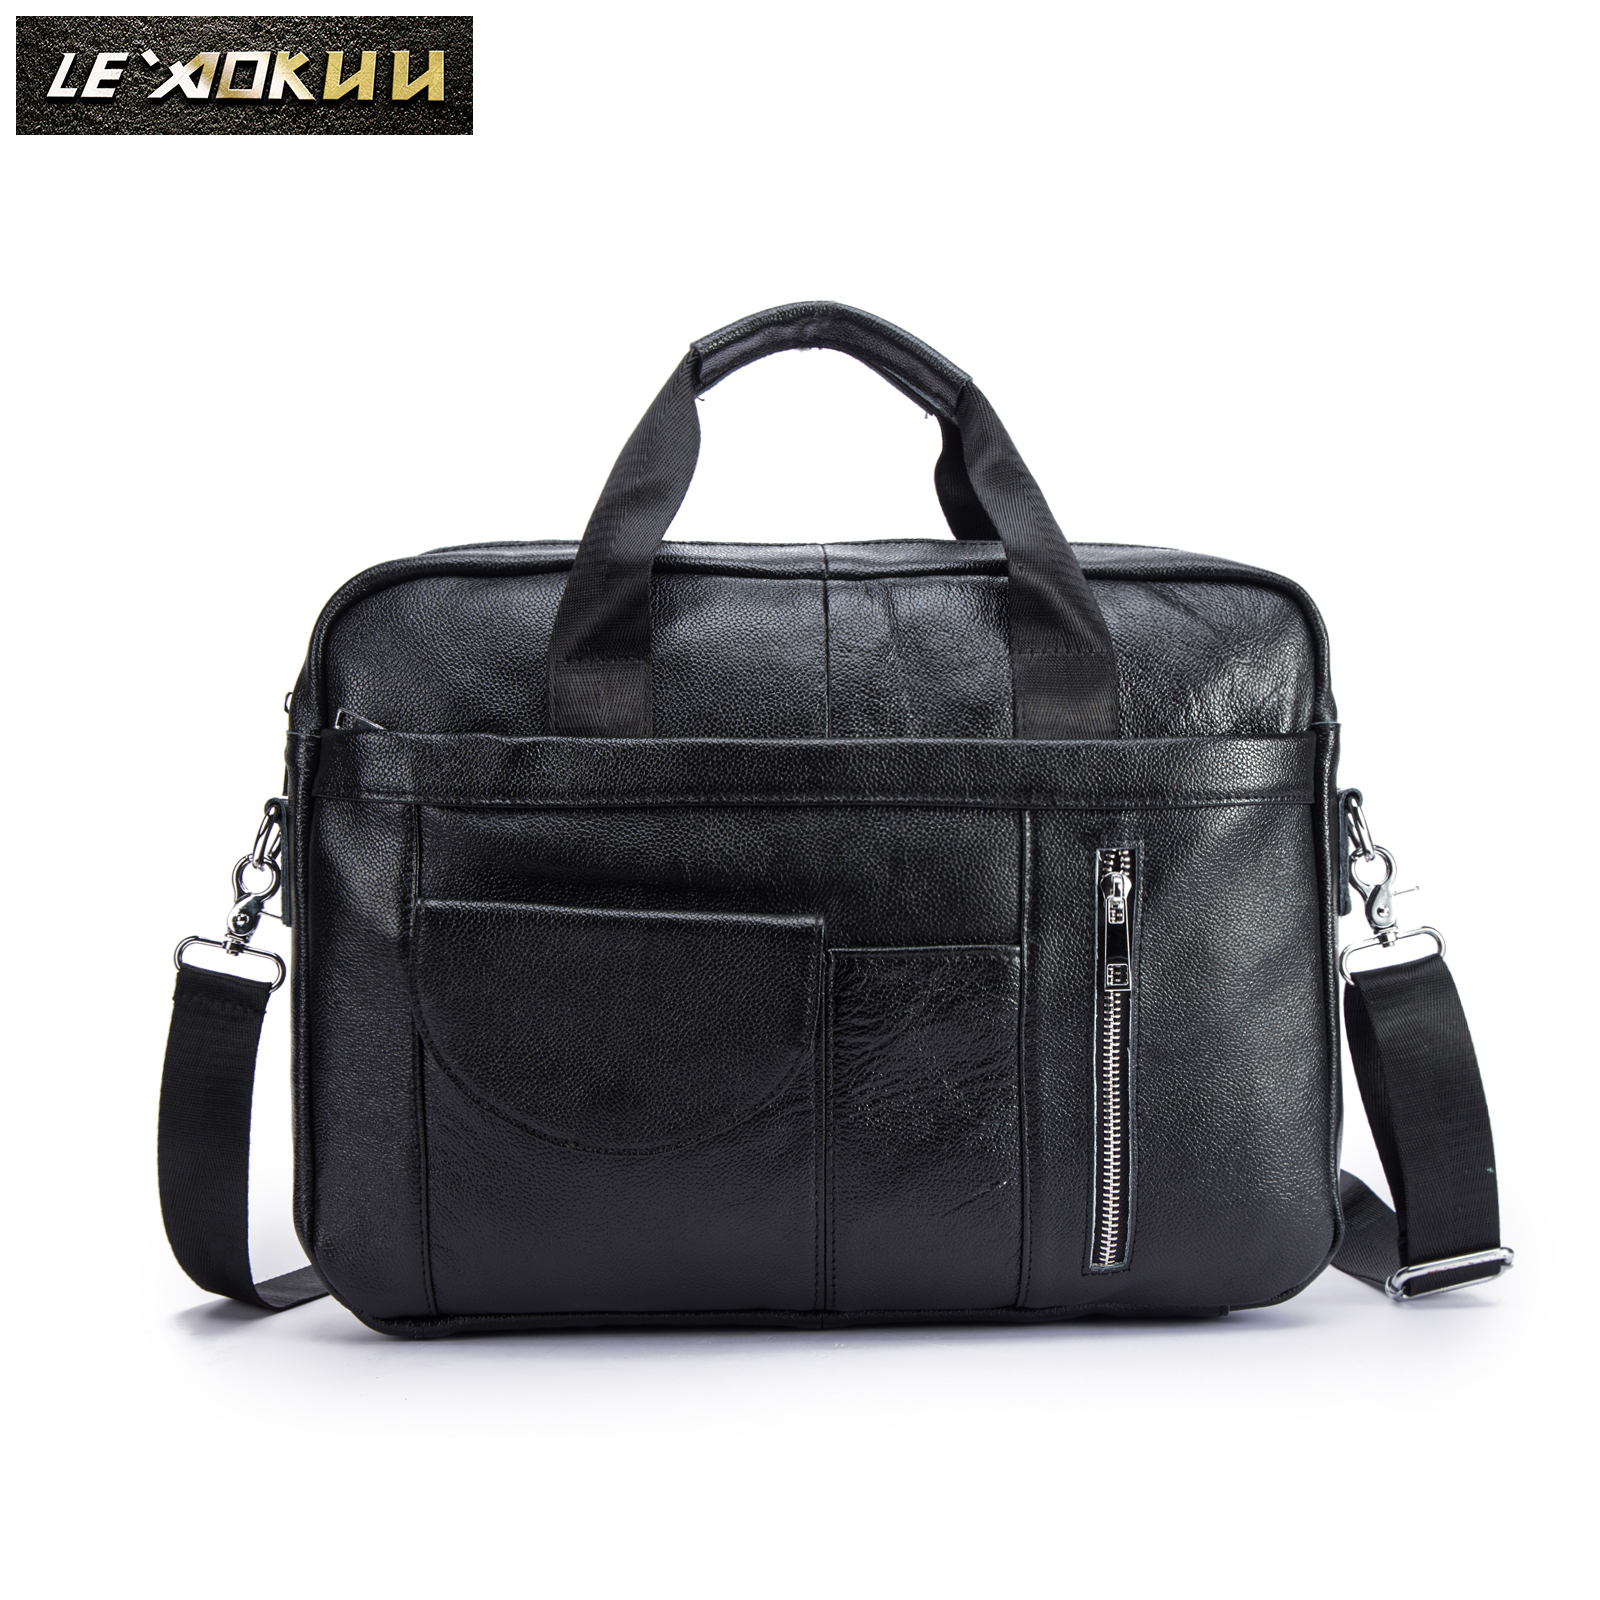 "Men Quality Leather Vintage Fashion Travel Briefcase Business 15.6"" Laptop Case Design Attache Messenger Bag Portfolio 1116b"